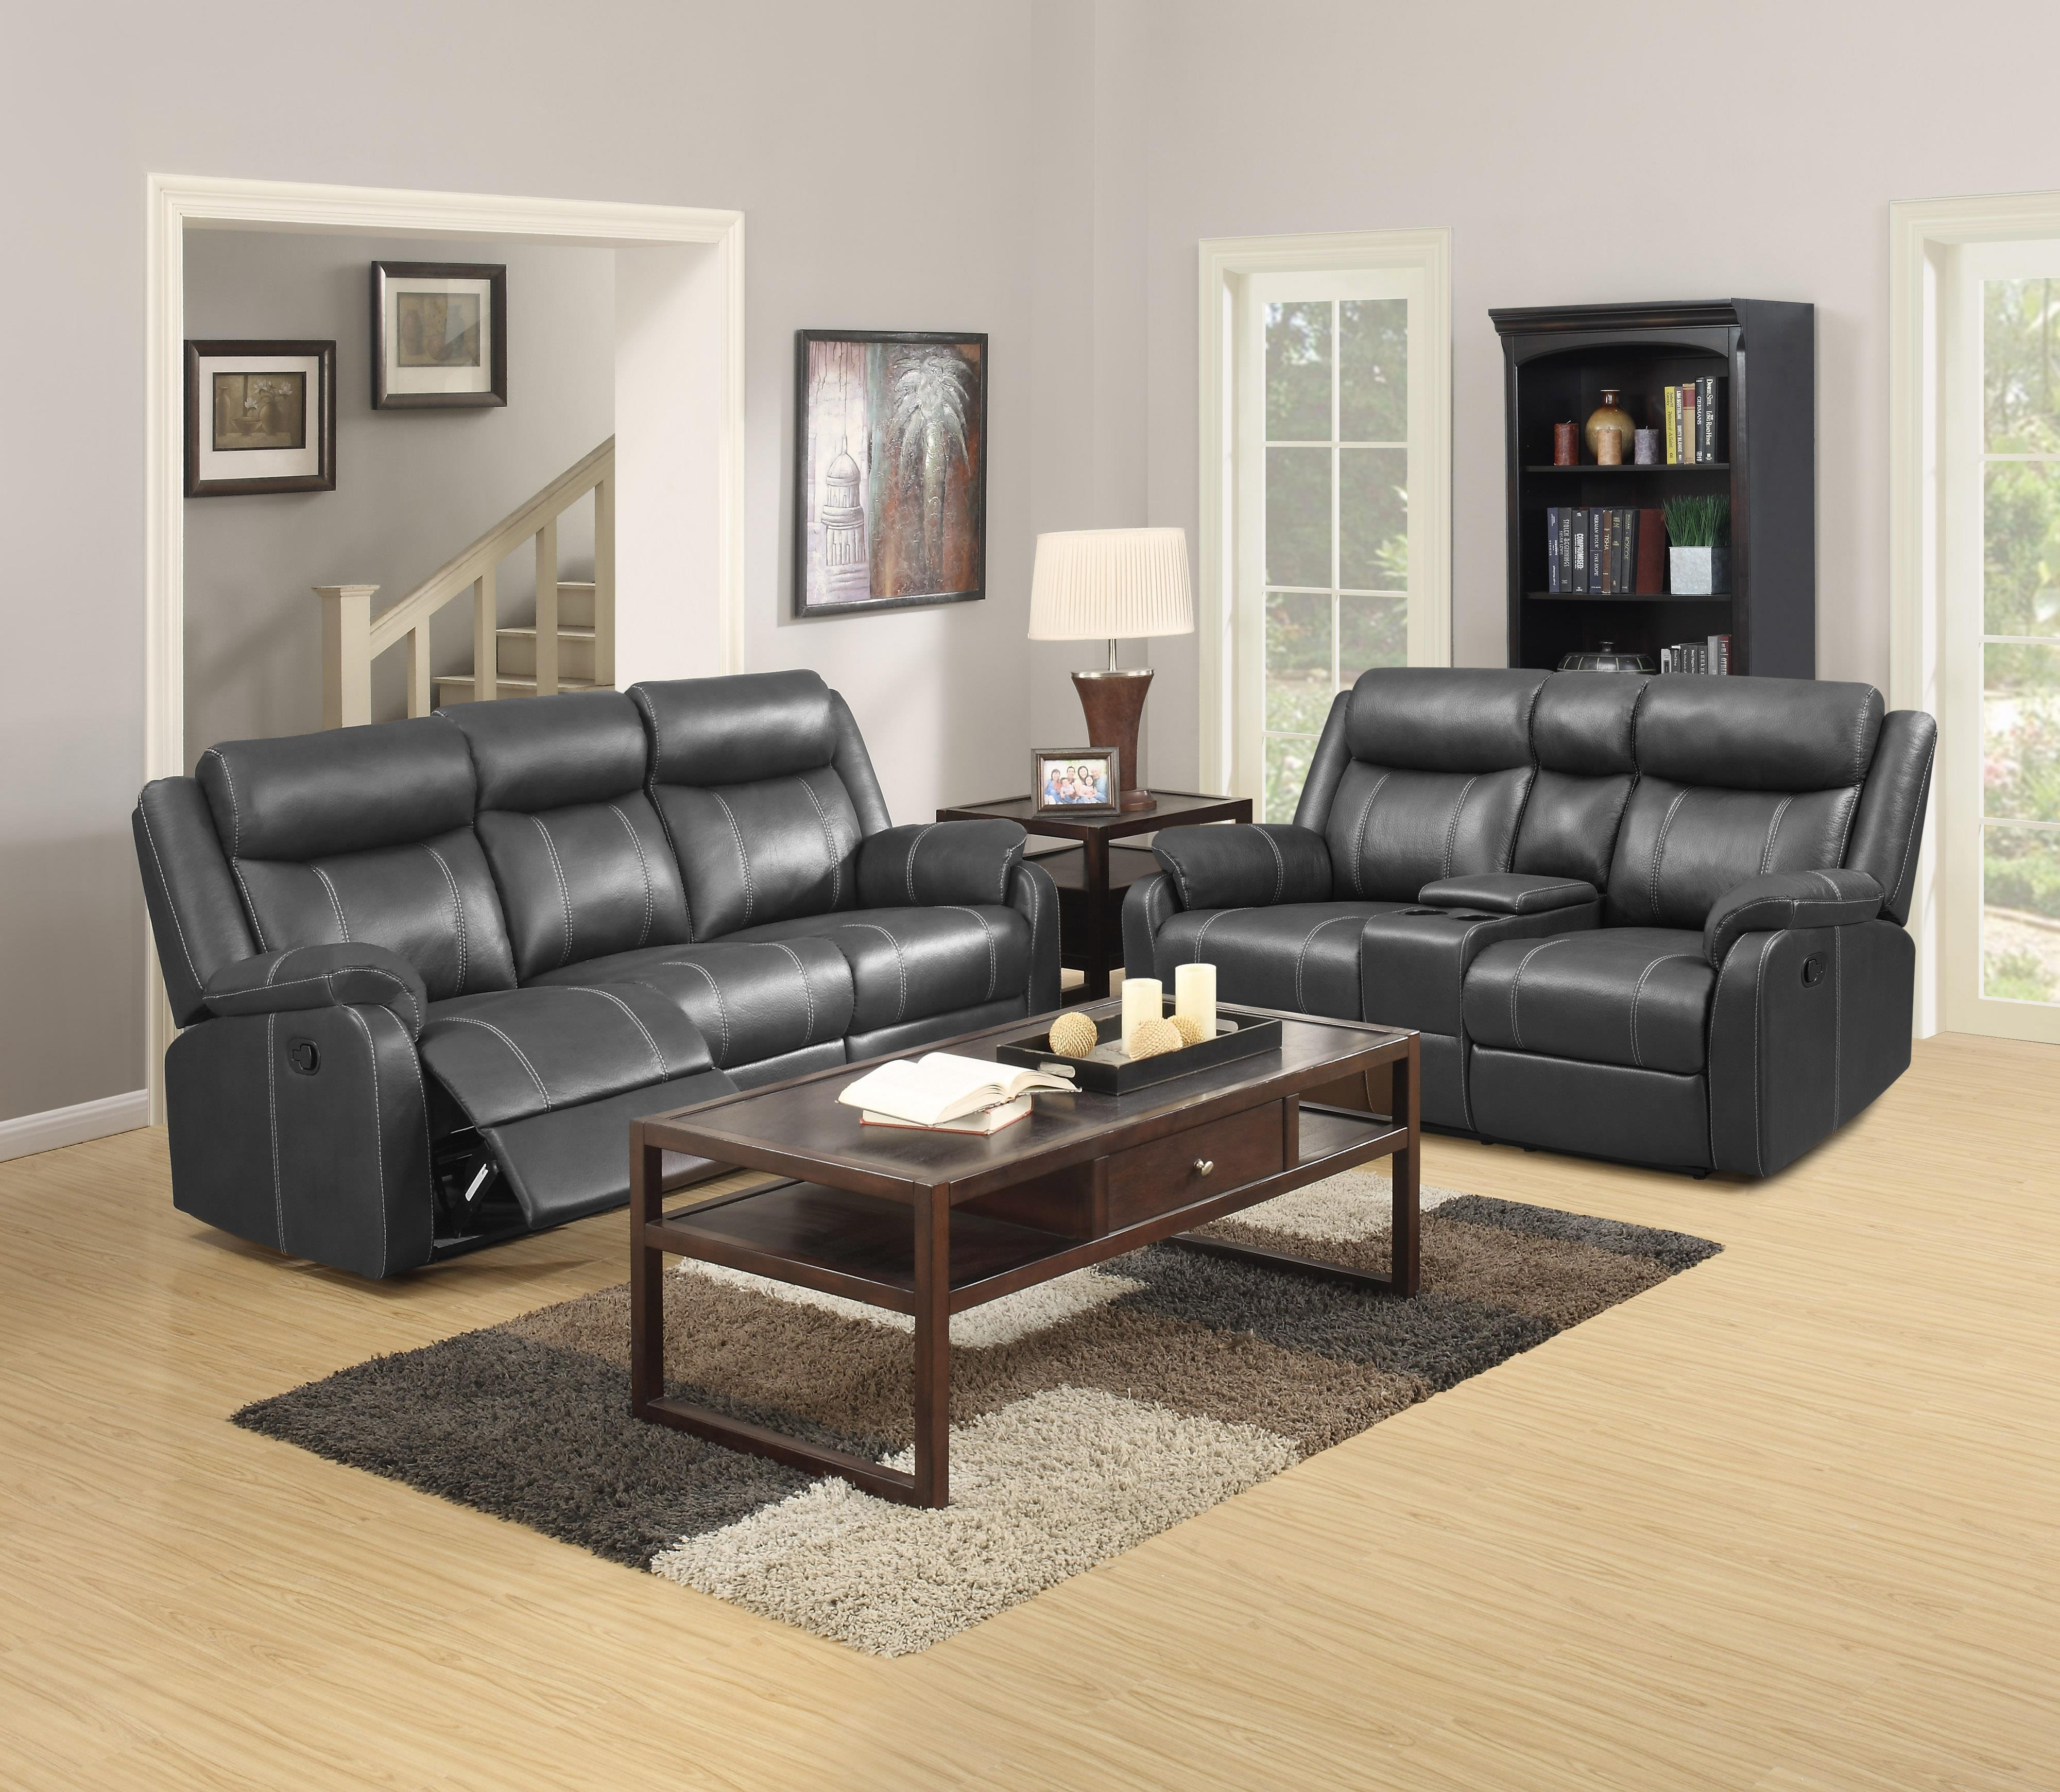 Domino-US Reclining Living Room Group by Klaussner International at Fine Home Furnishings